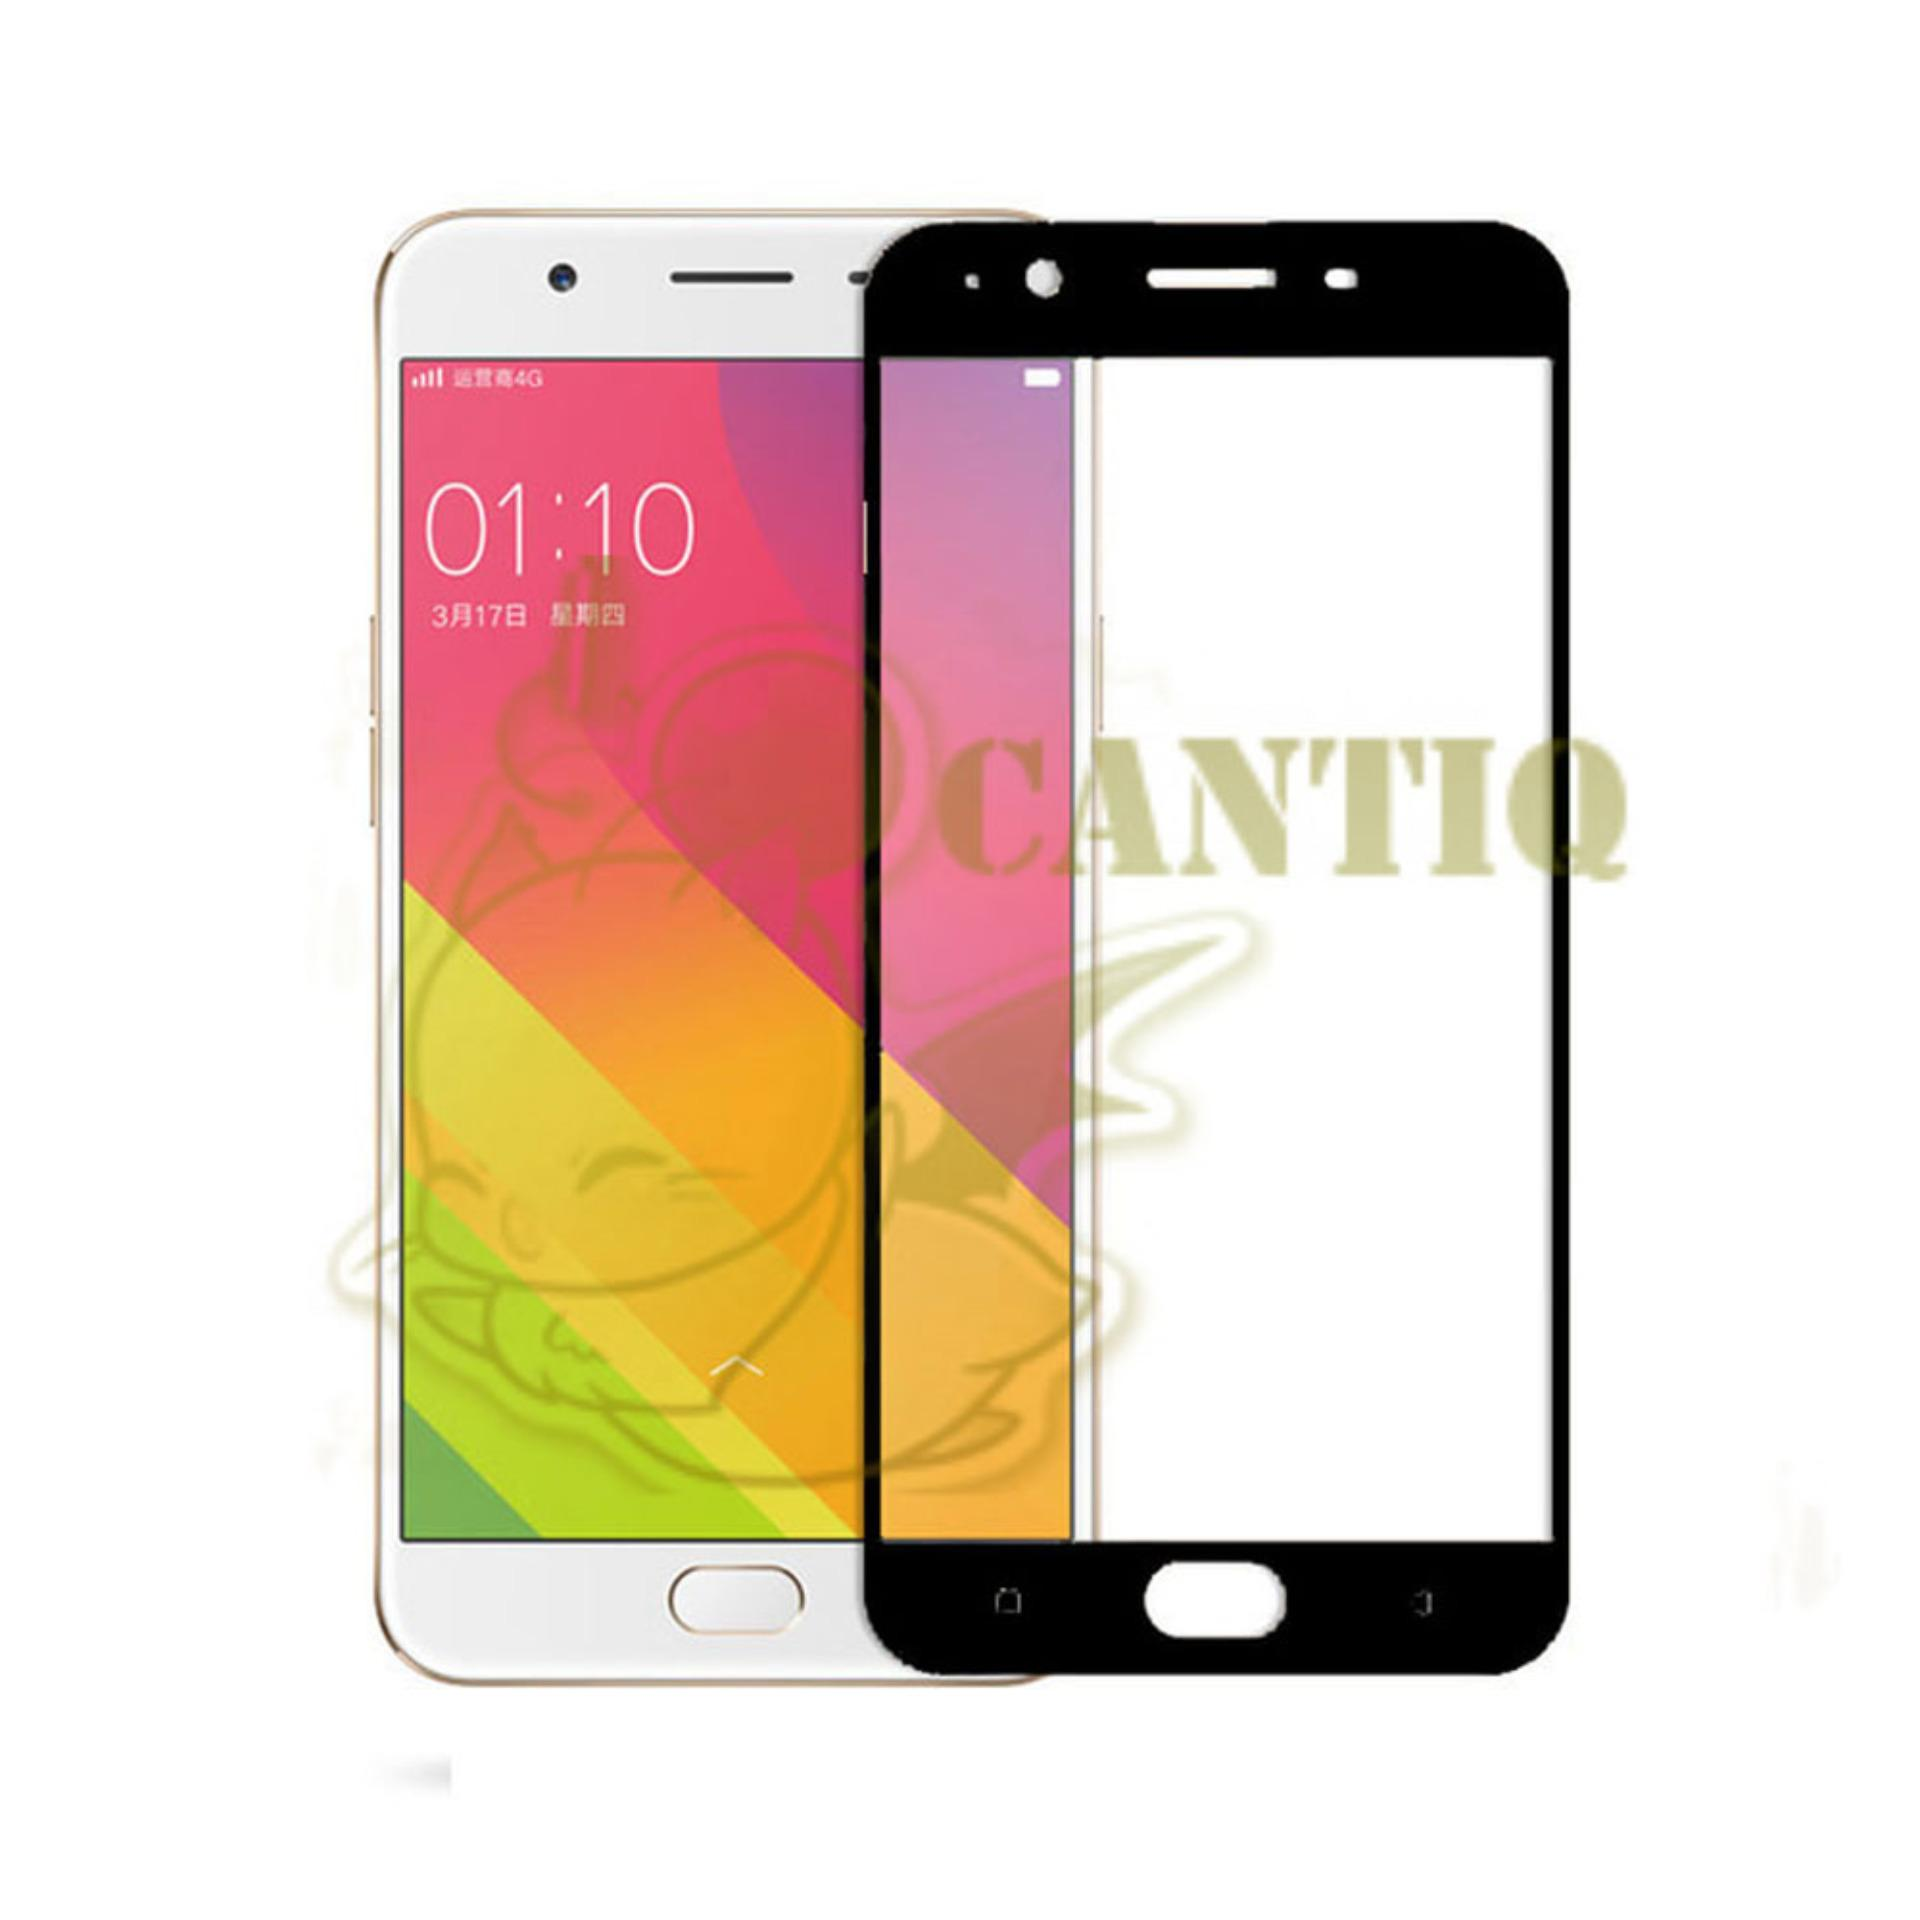 QCF Tempered Glass Full Screen Oppo F1S Selfie Expert A59 (Only Depan) / Screen Protector Oppo A59 / Temper Oppo A59  - Hitam